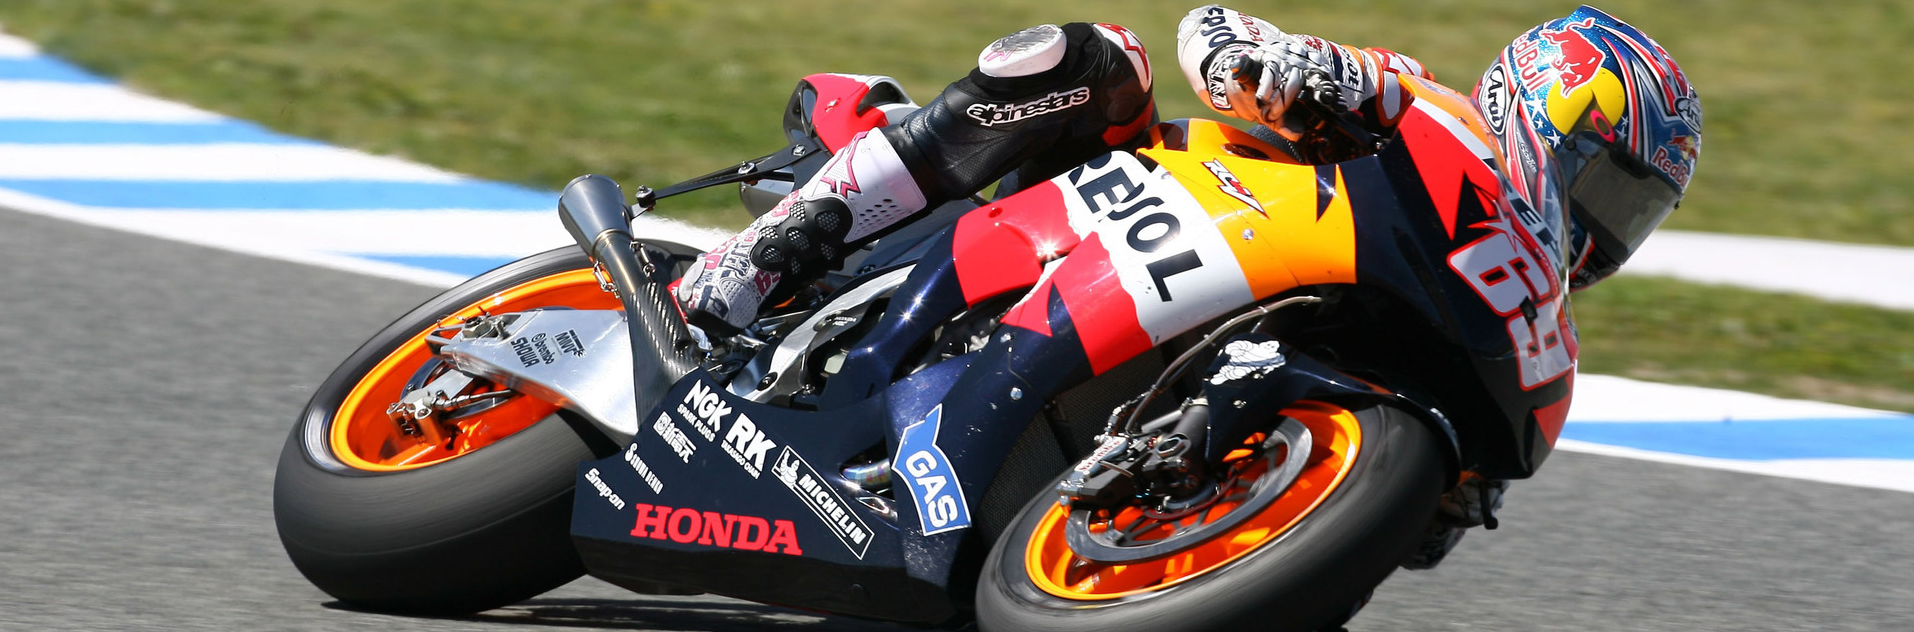 Nicky Hayden is slated to make his return MOTOGP this weekend at the Australian Grand Prix substituting for the injured Dani Pedrosa. This marks the American's first return to MOTOGP since winning the world title a decade ago. The reunion will pair Hayden alongside world champion Marc Marquez on the works HRC bike and will be Hayden's first appearance back at his old racing team.